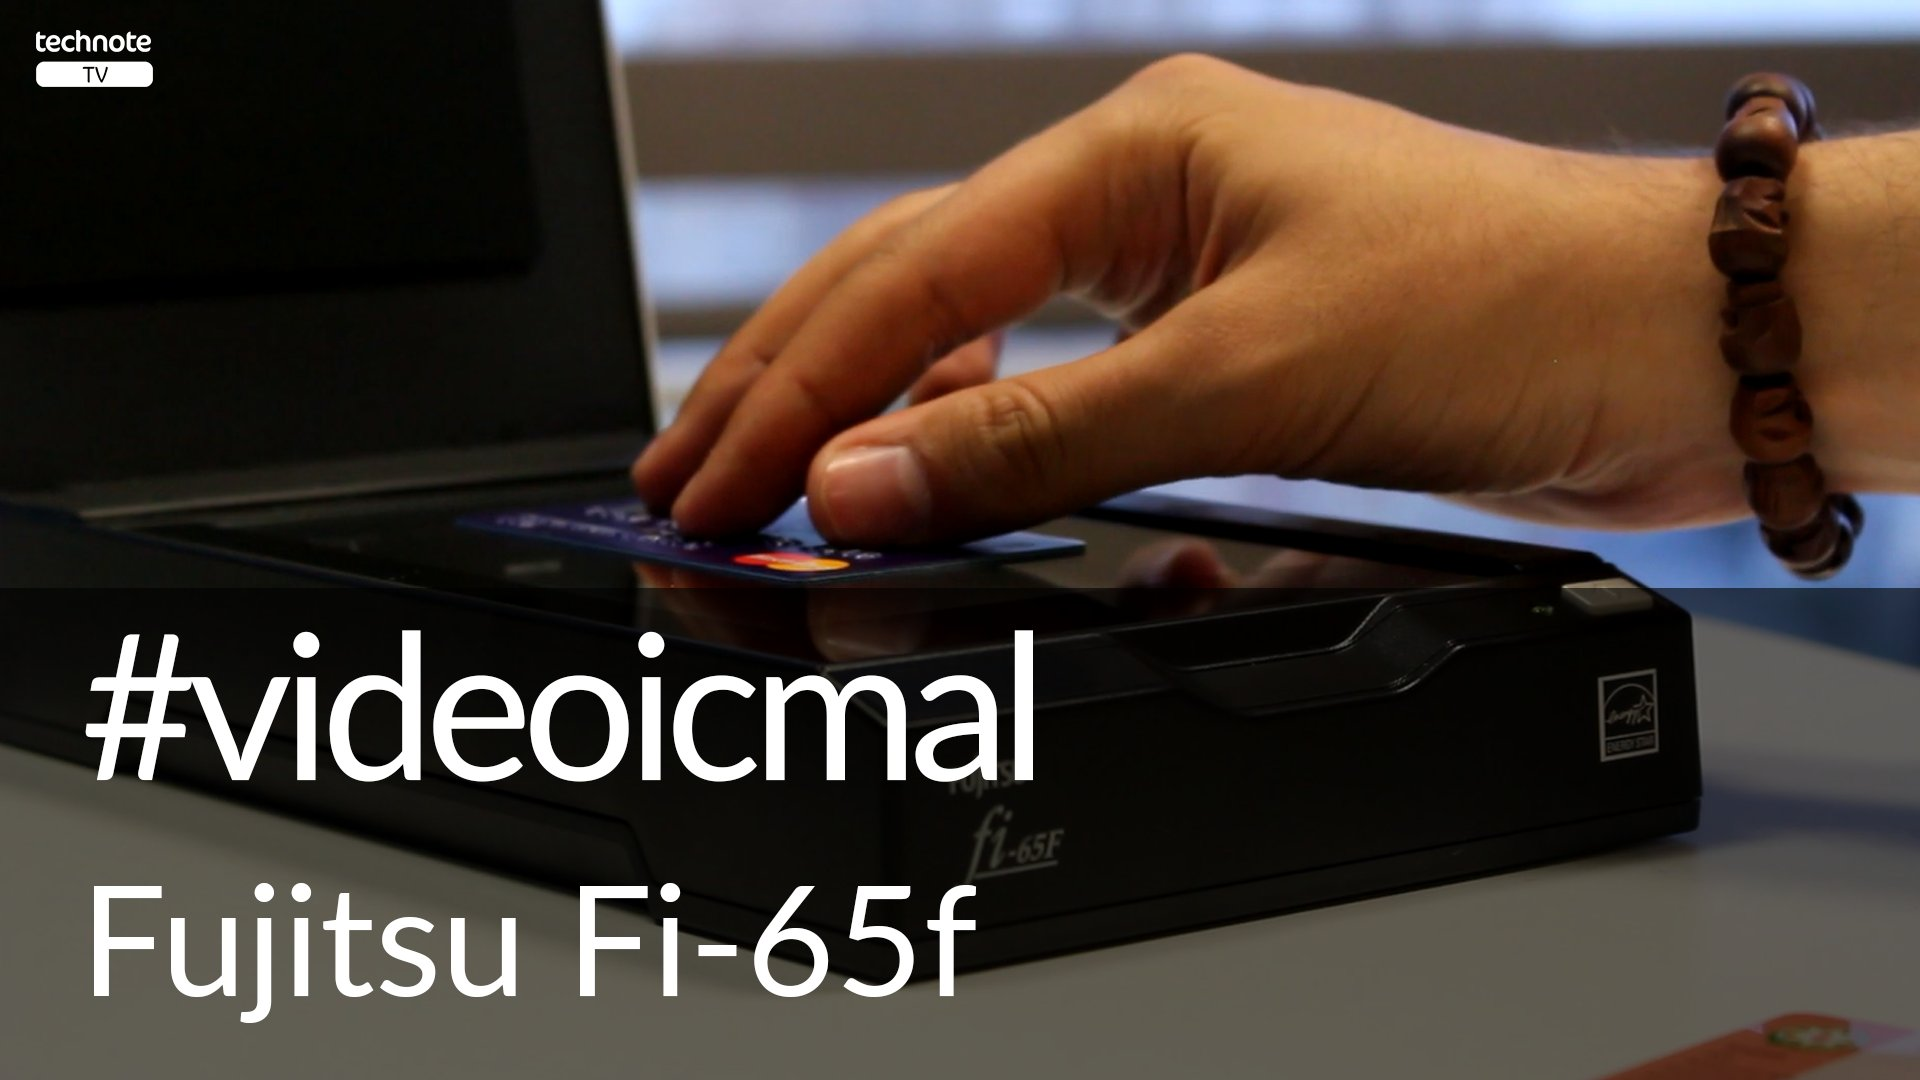 Fujitsu Fi-65f Passport Skanner video icmal